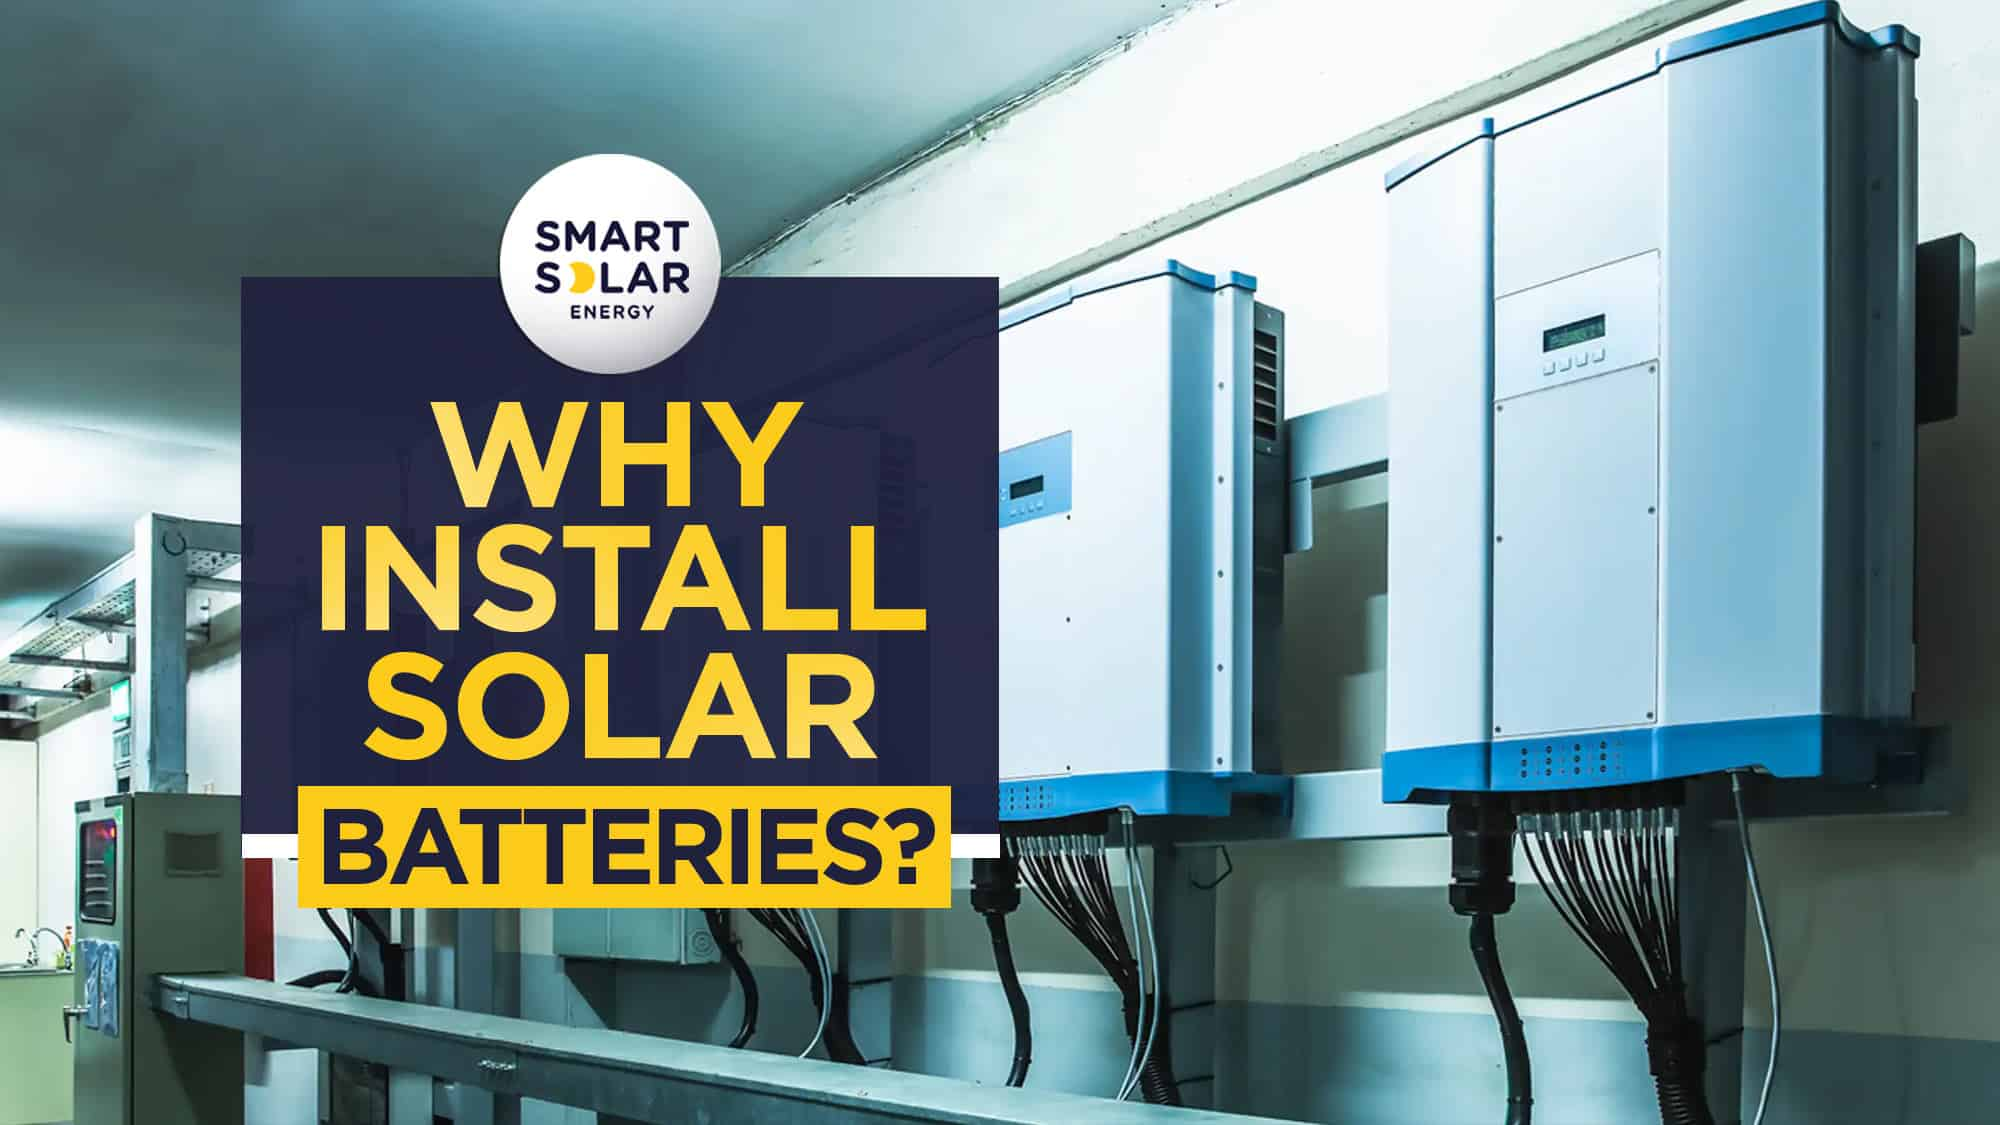 Why Install Solar Batteries